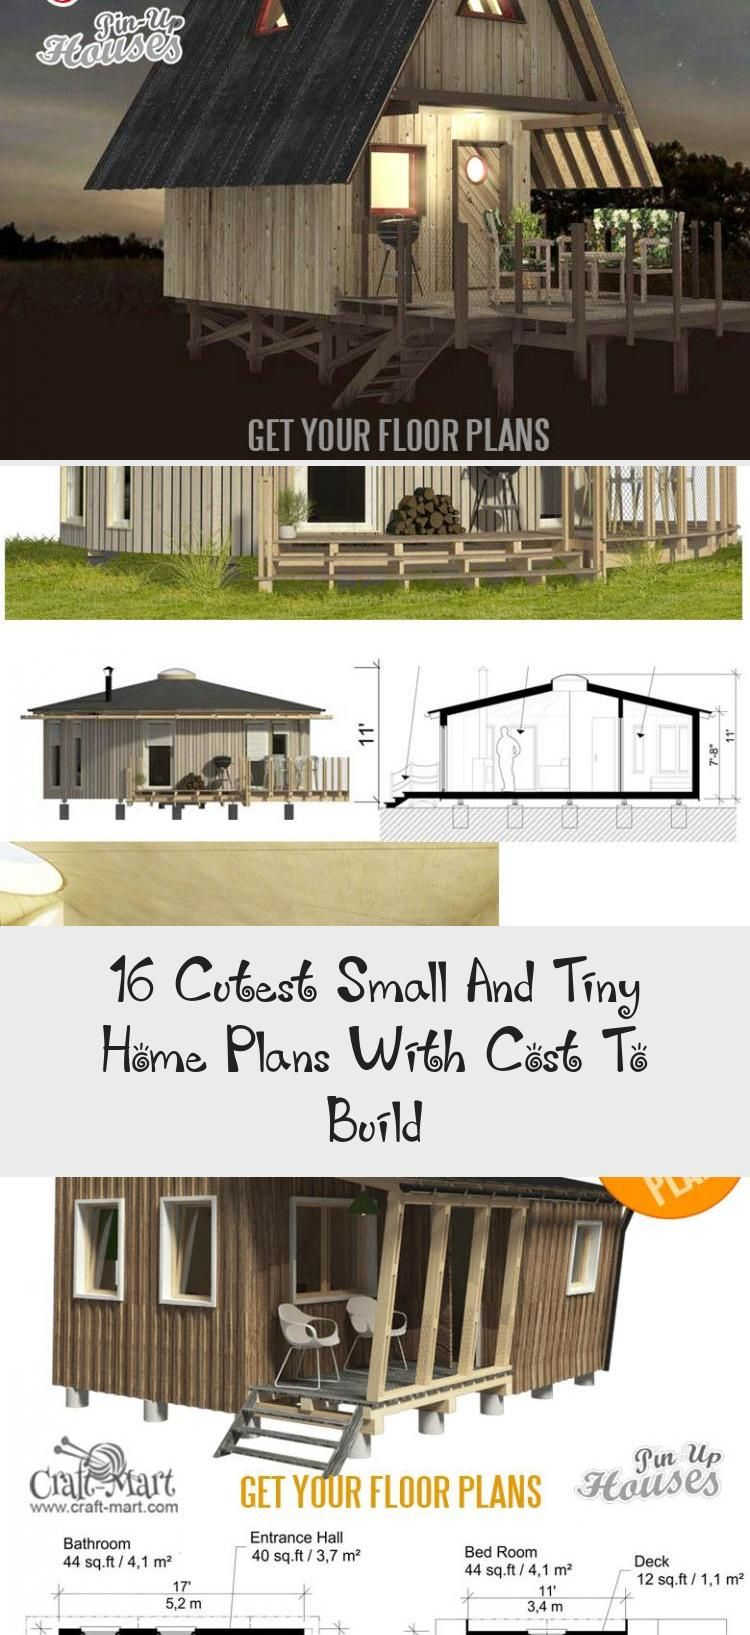 Small And Tiny Home Plans With Cost To Build Small Bungalow House Plans Mila Tinyhousevideos Tinyhousemovement Tin Tiny House Plans House Plans Tiny House